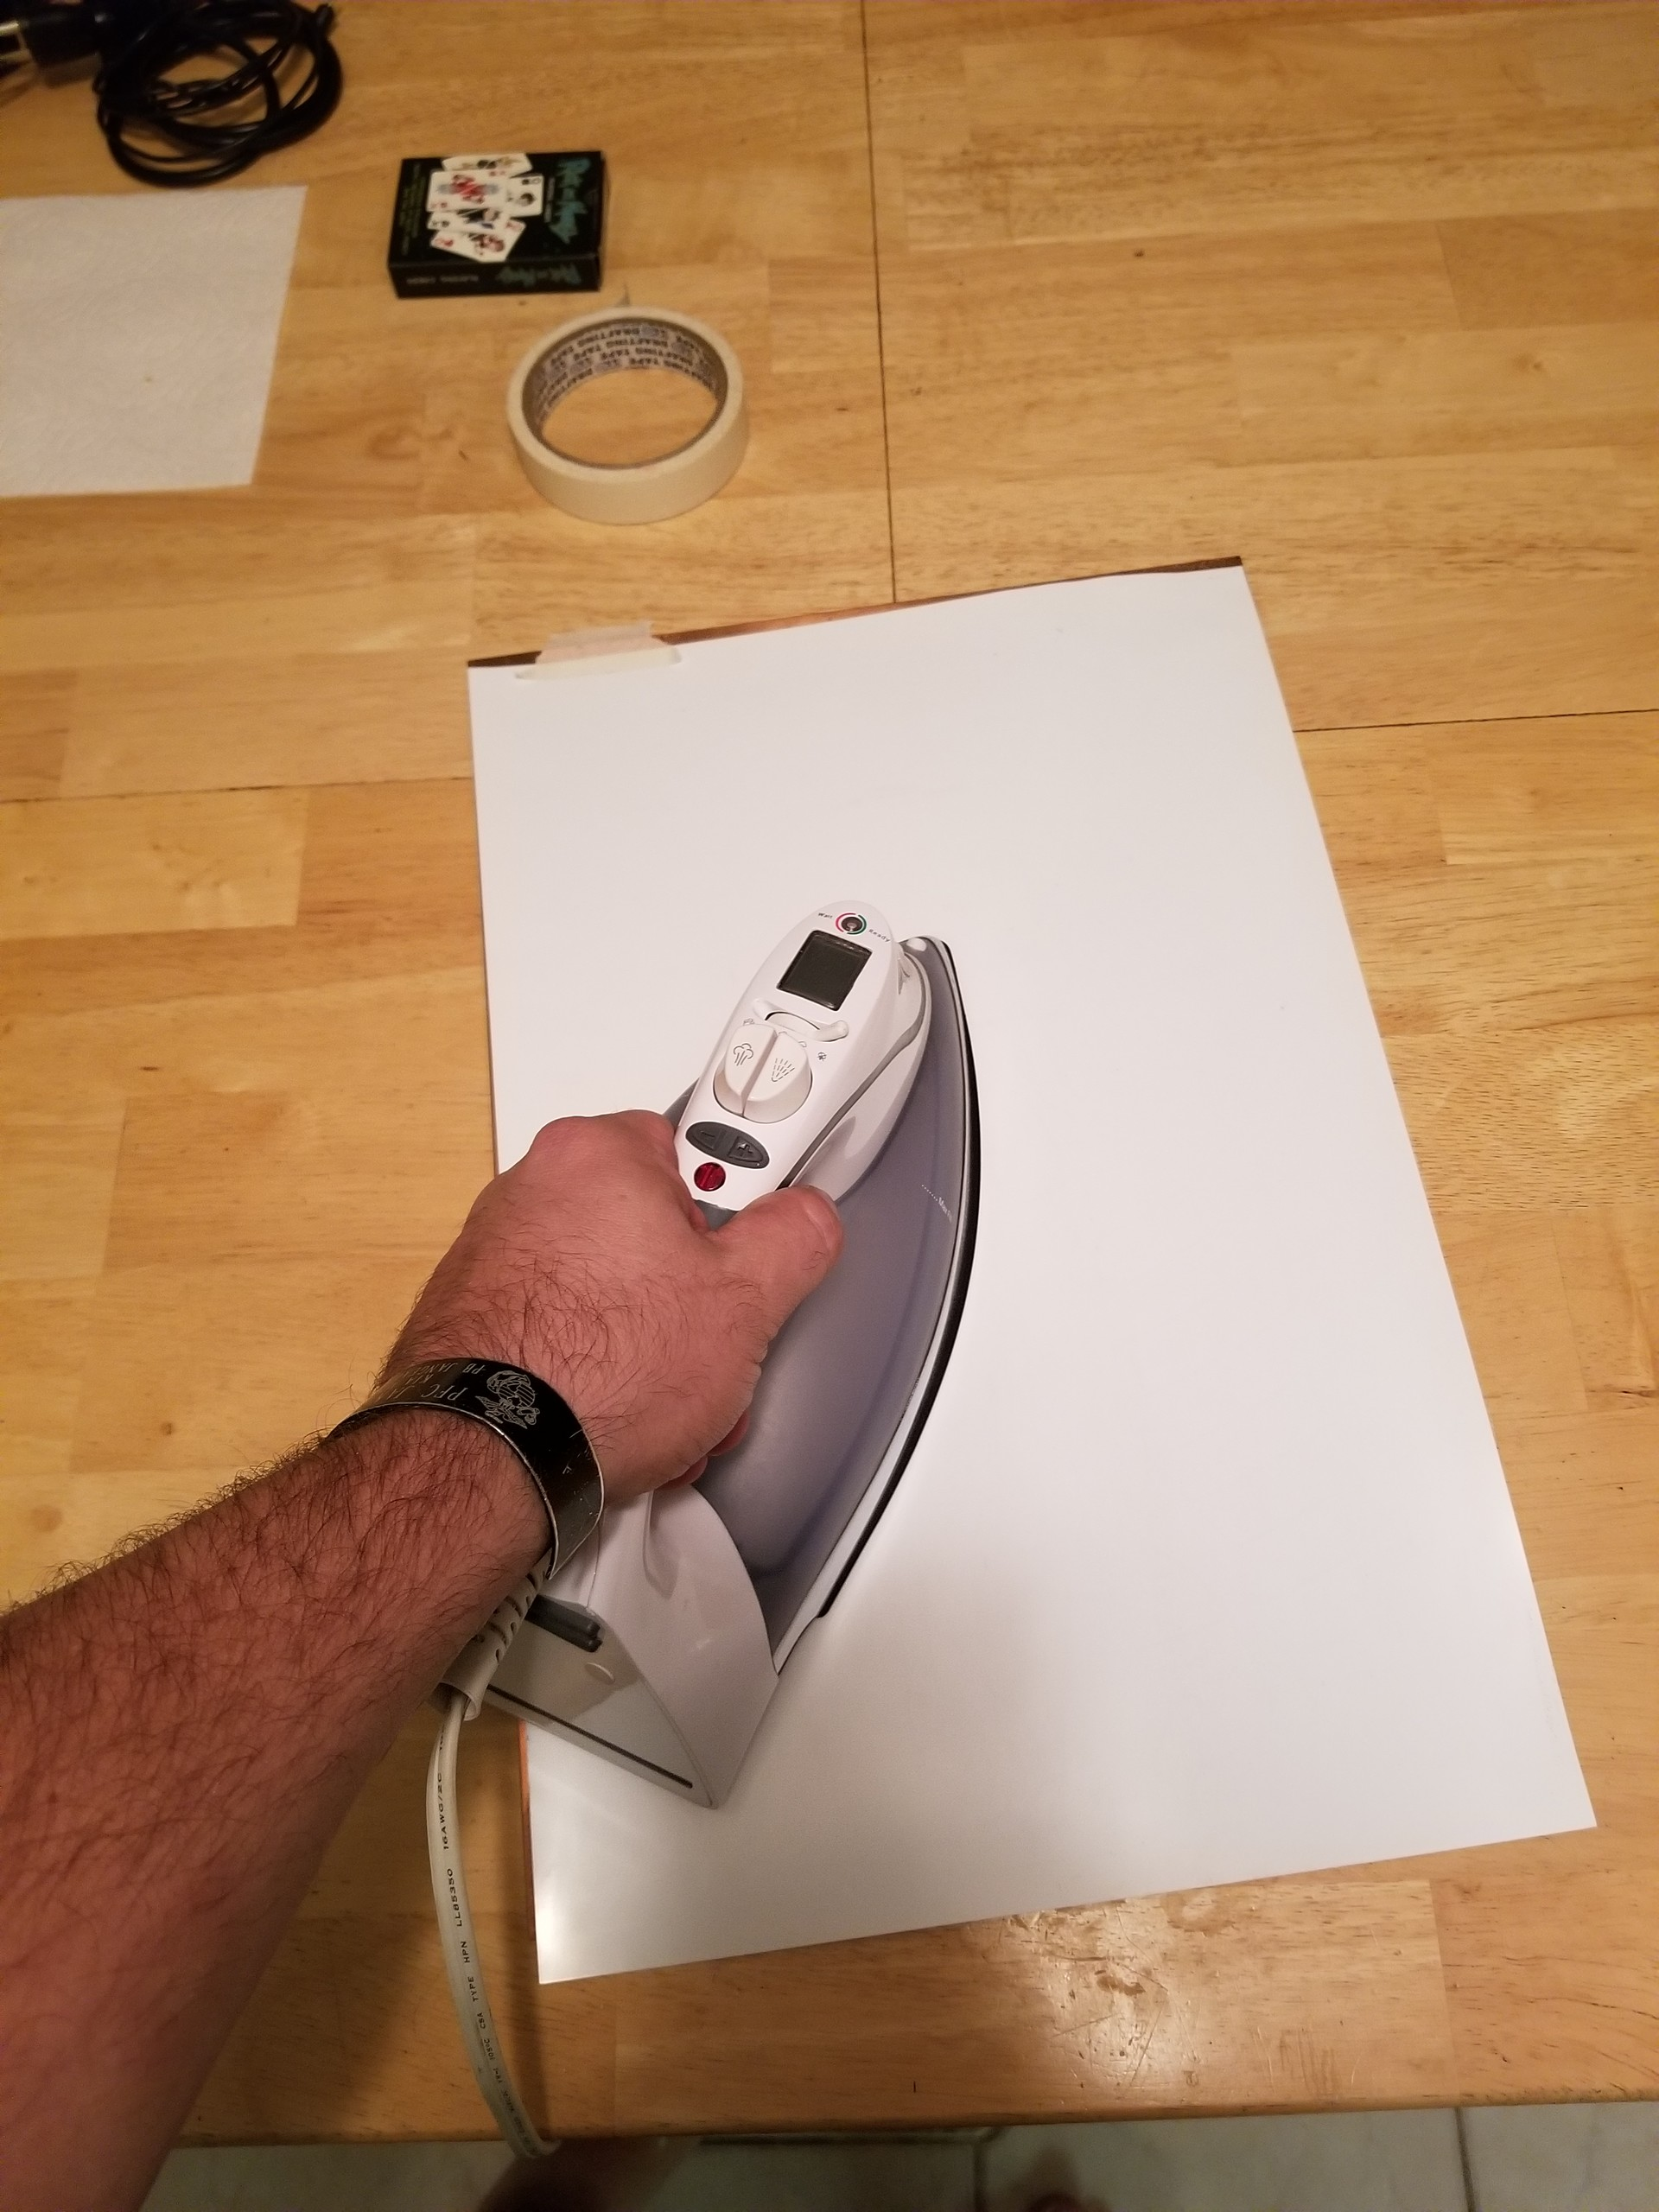 Ironing the back of the mylar sheet for approximately 5 minutes.